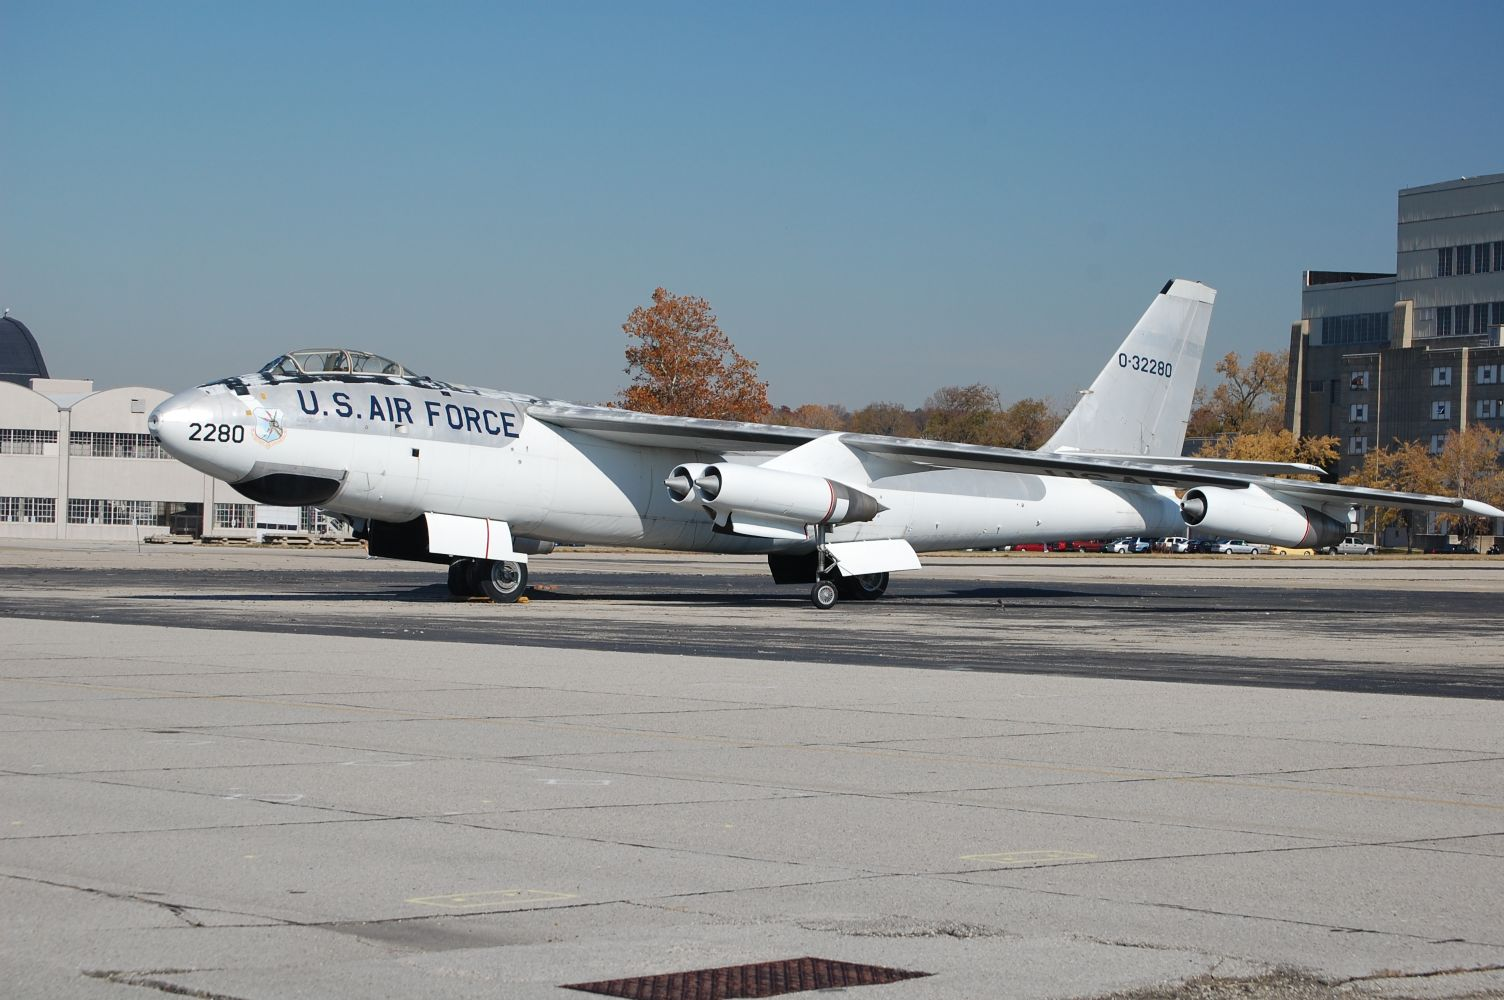 B-47E at WPAFB #2